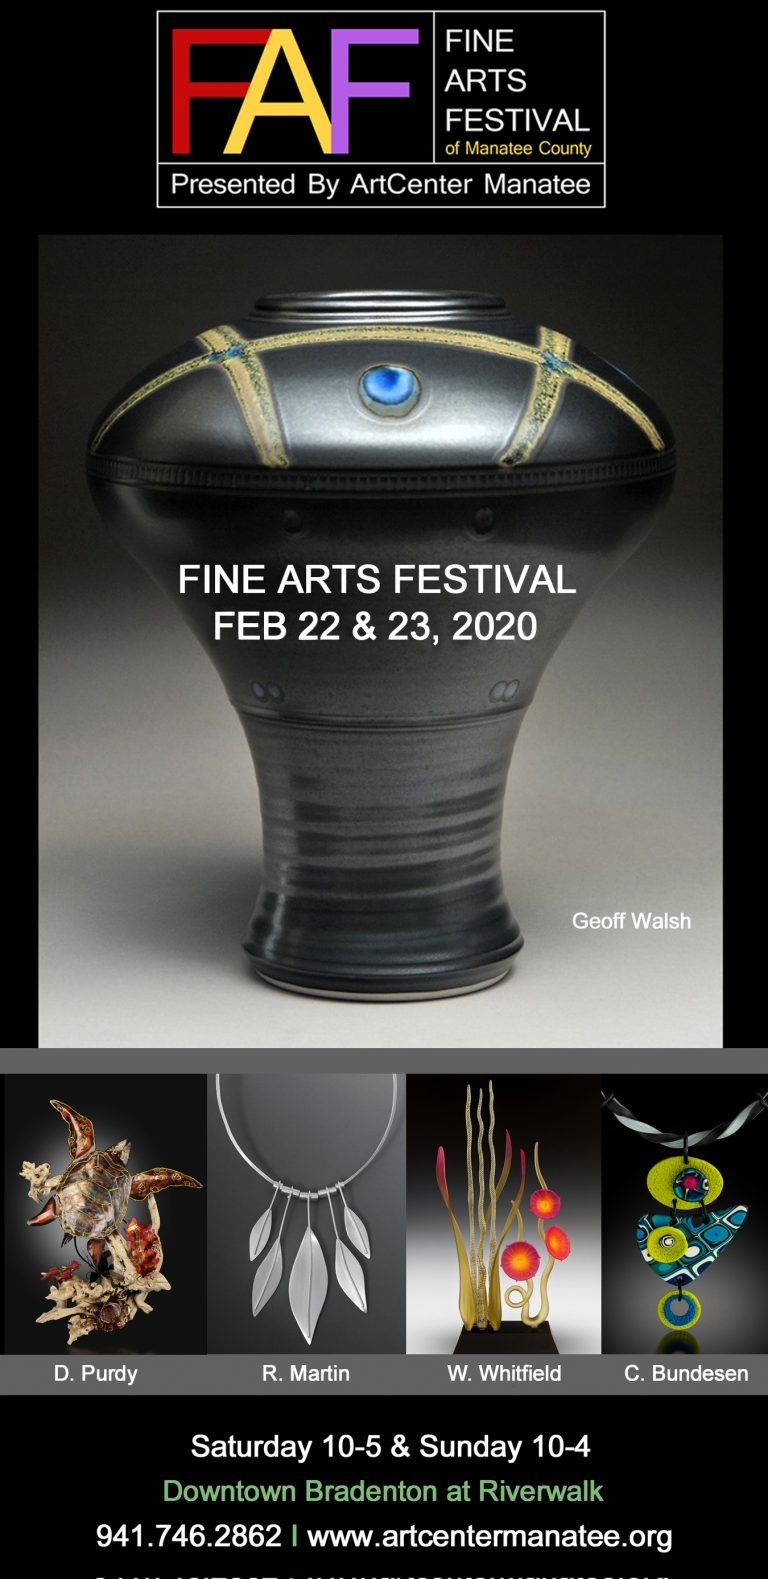 Fine Arts Festival Of Manatee County 2020 (Bradenton, FL) – Call for Artists